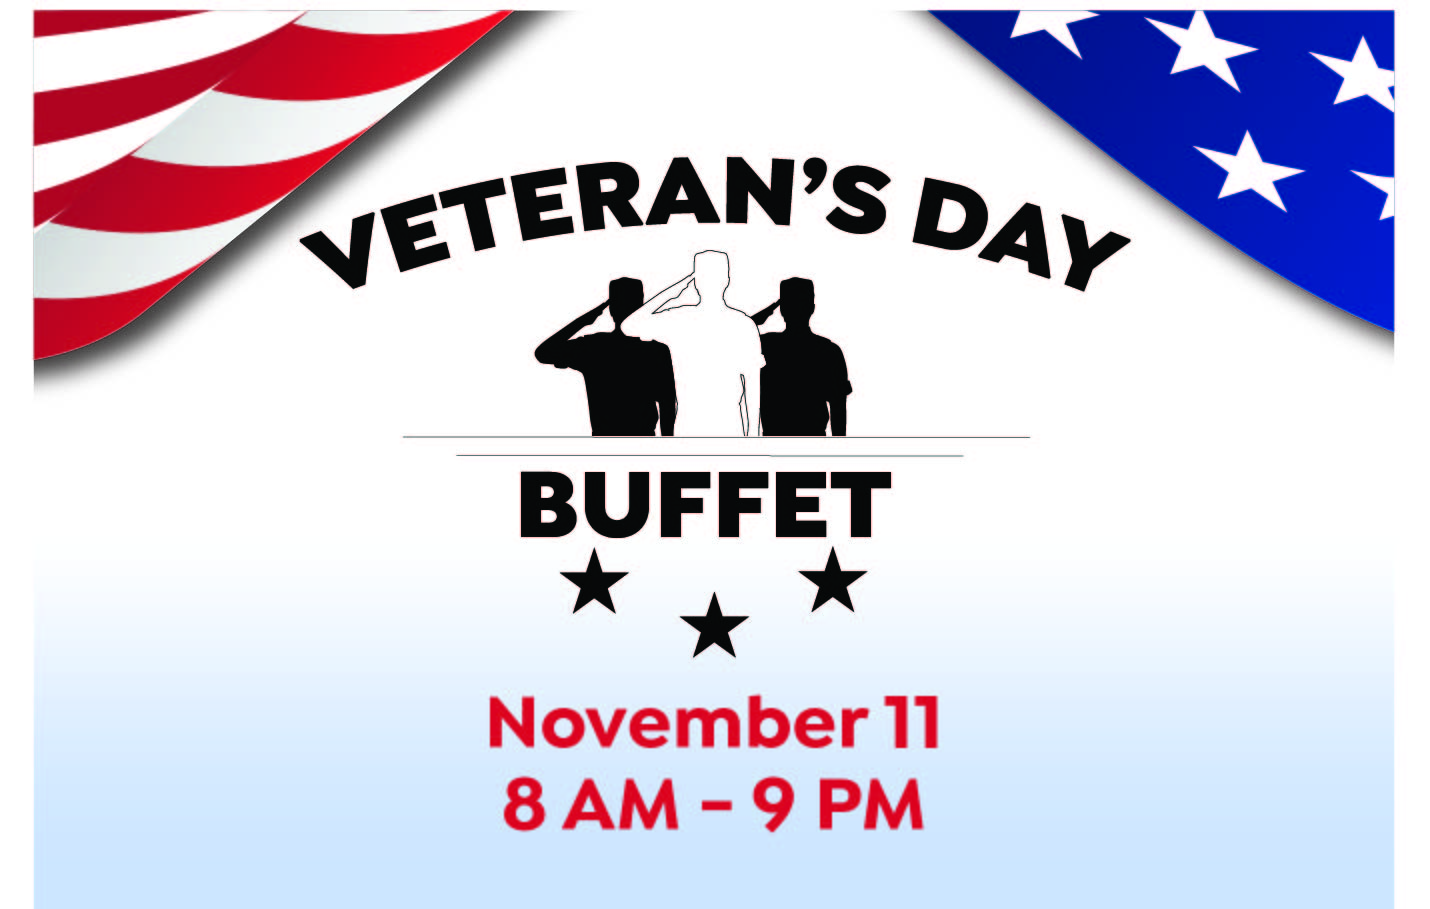 Veterans Day Buffet